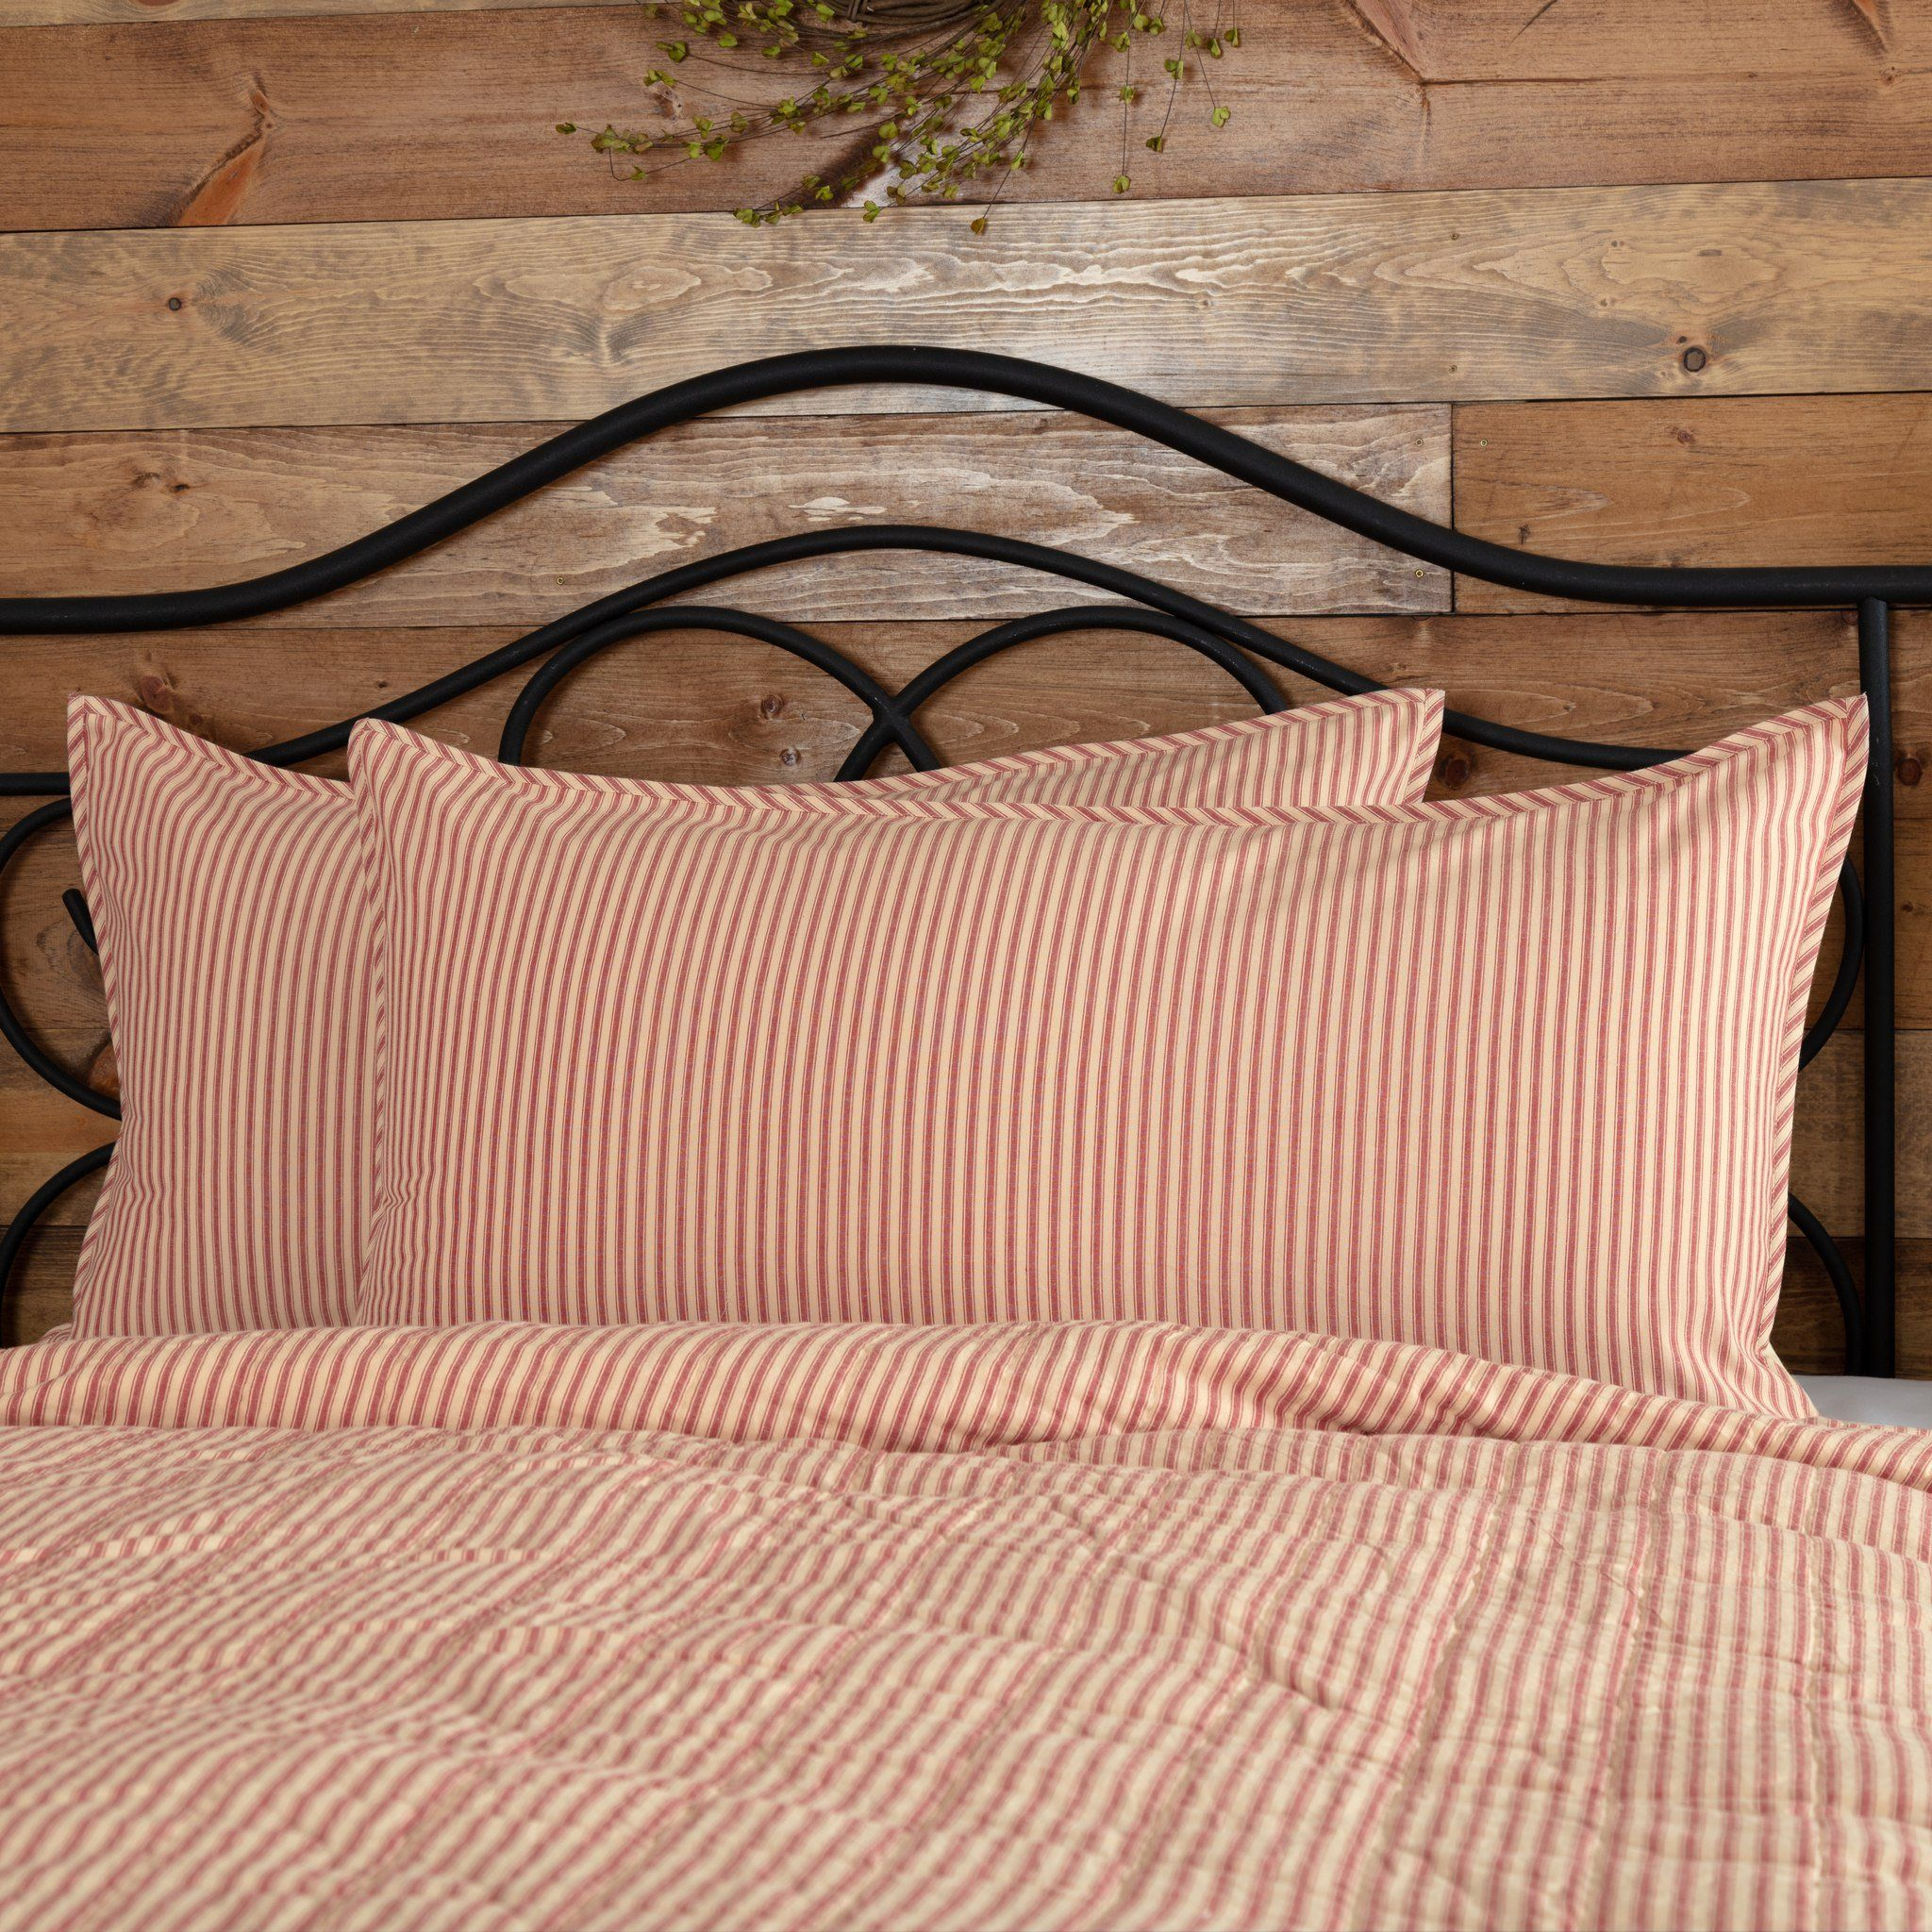 SAWYER MILL CHARCOAL TICKING STRIPE QUILT SET-choose size /& accessories-Bedding